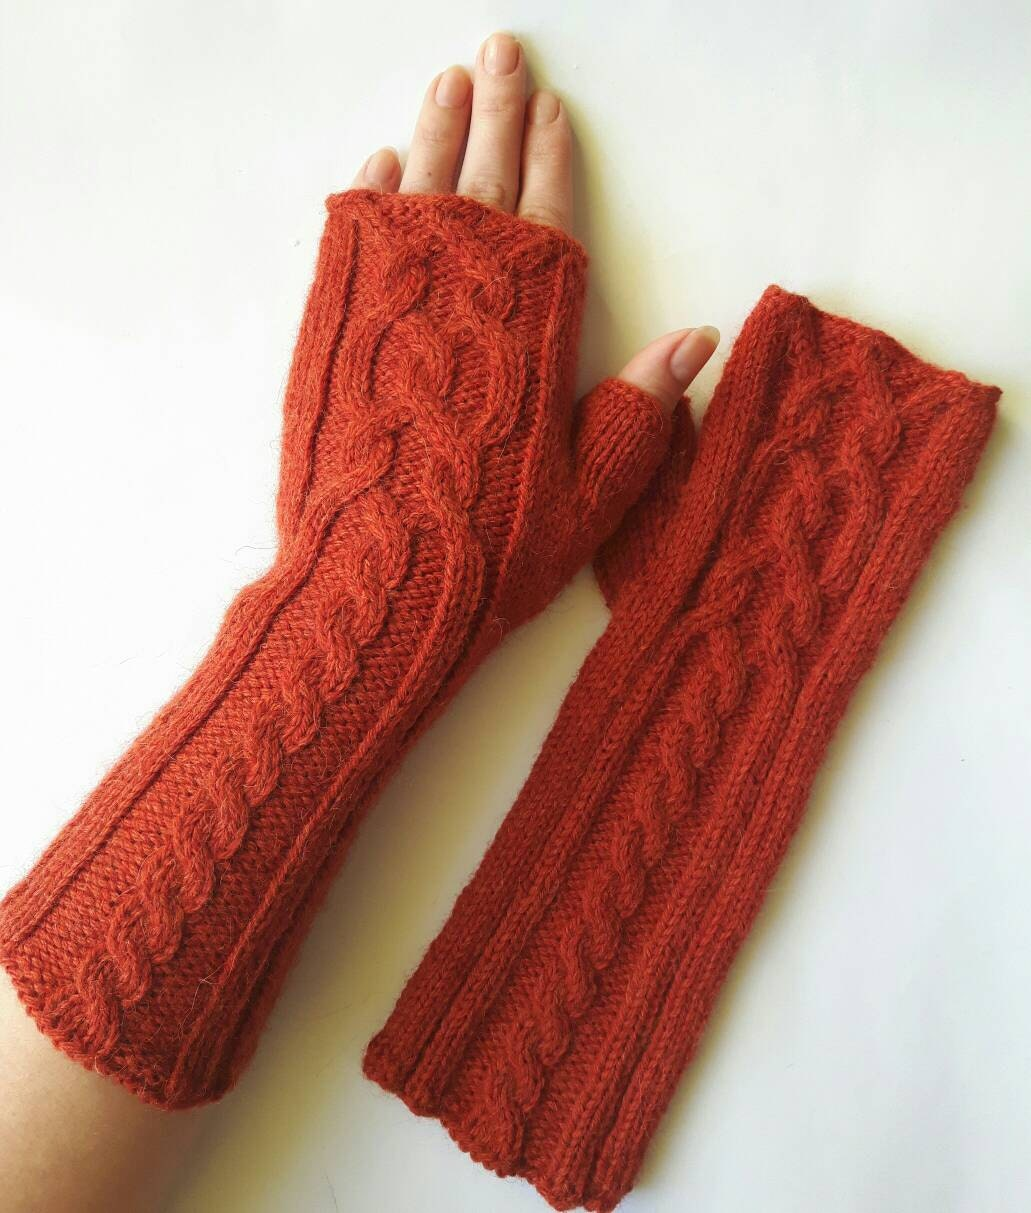 Long Arm Warmers Knitting Pattern : Knit fingerless gloves hand arm warmers Knit hand by SoftKnitsHome